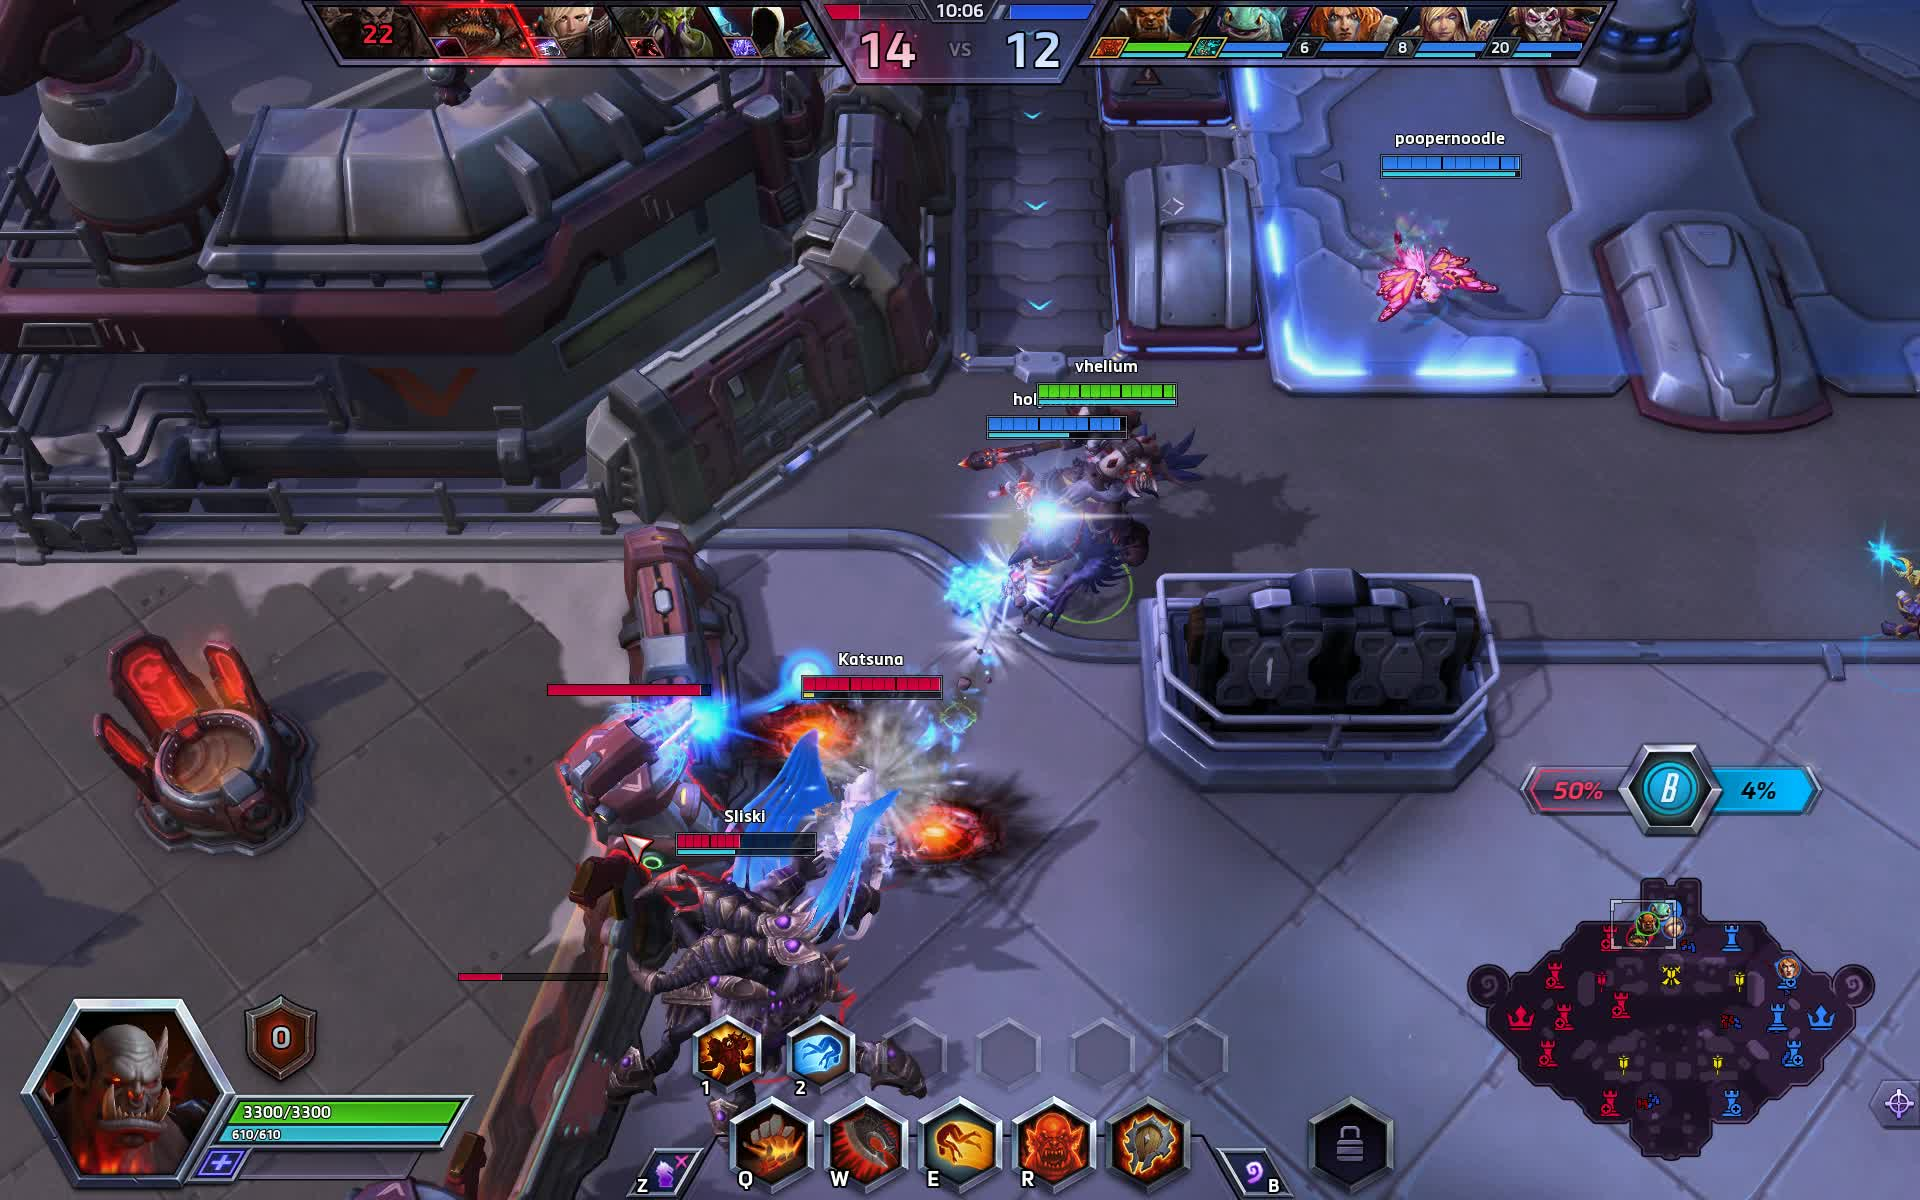 heroesofthestorm, overwatch, vlc-record-2019-04-05-15h04m48s-Heroes of the Storm 2019.04.05 - 14.52.29.03.DVR.mp4- GIFs